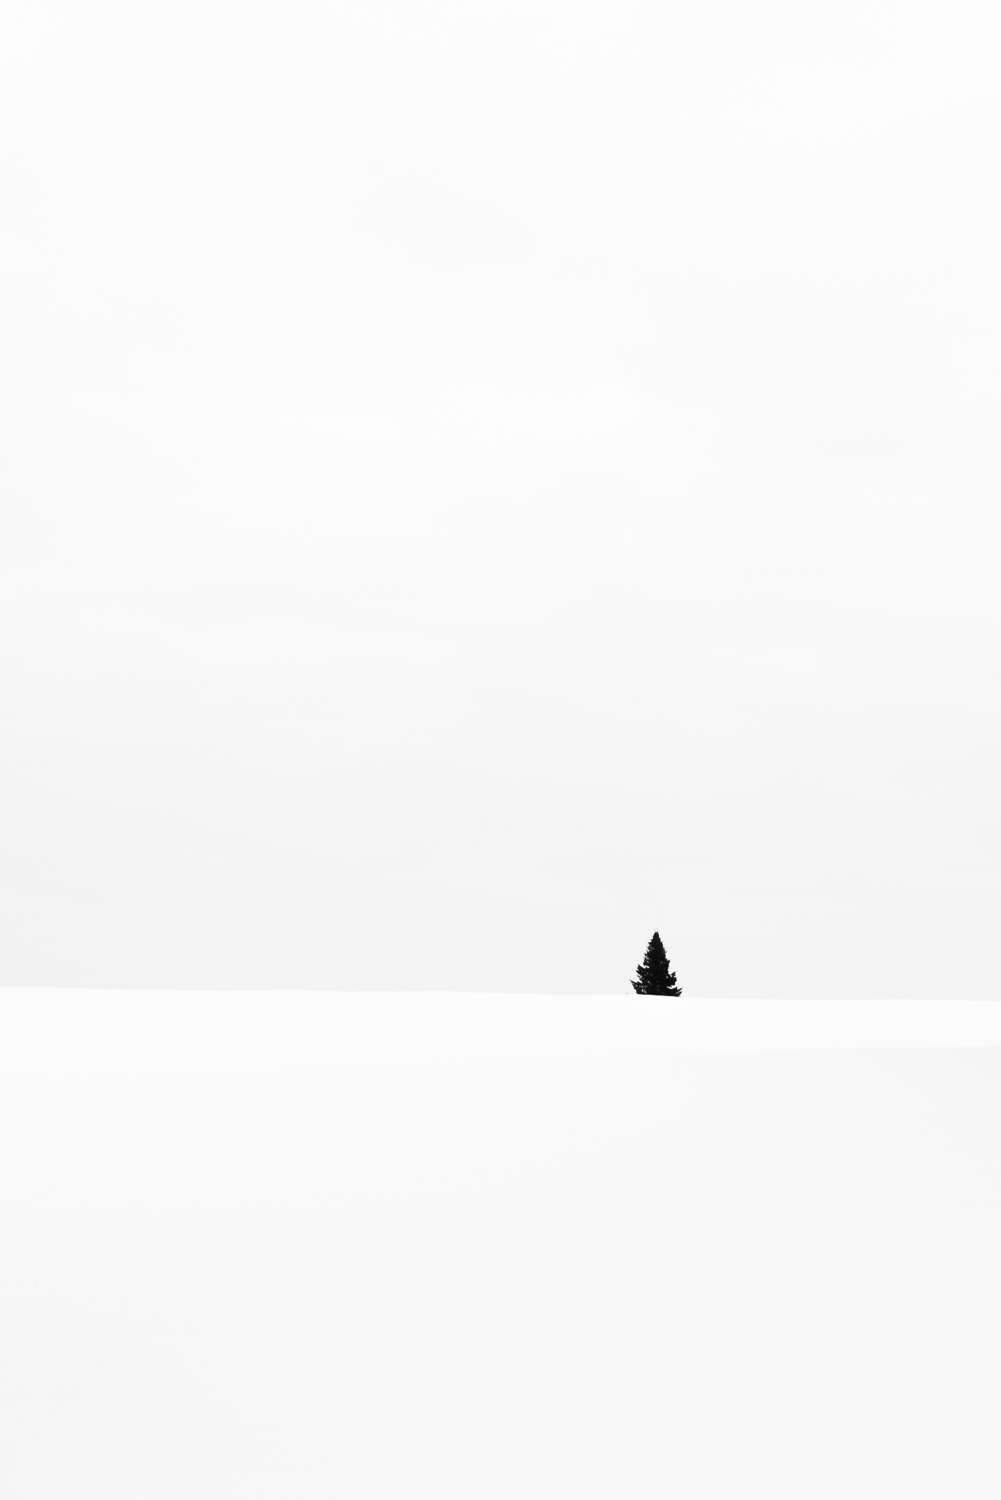 """Snowscapes"" - a photo by Eirik Jeistad"